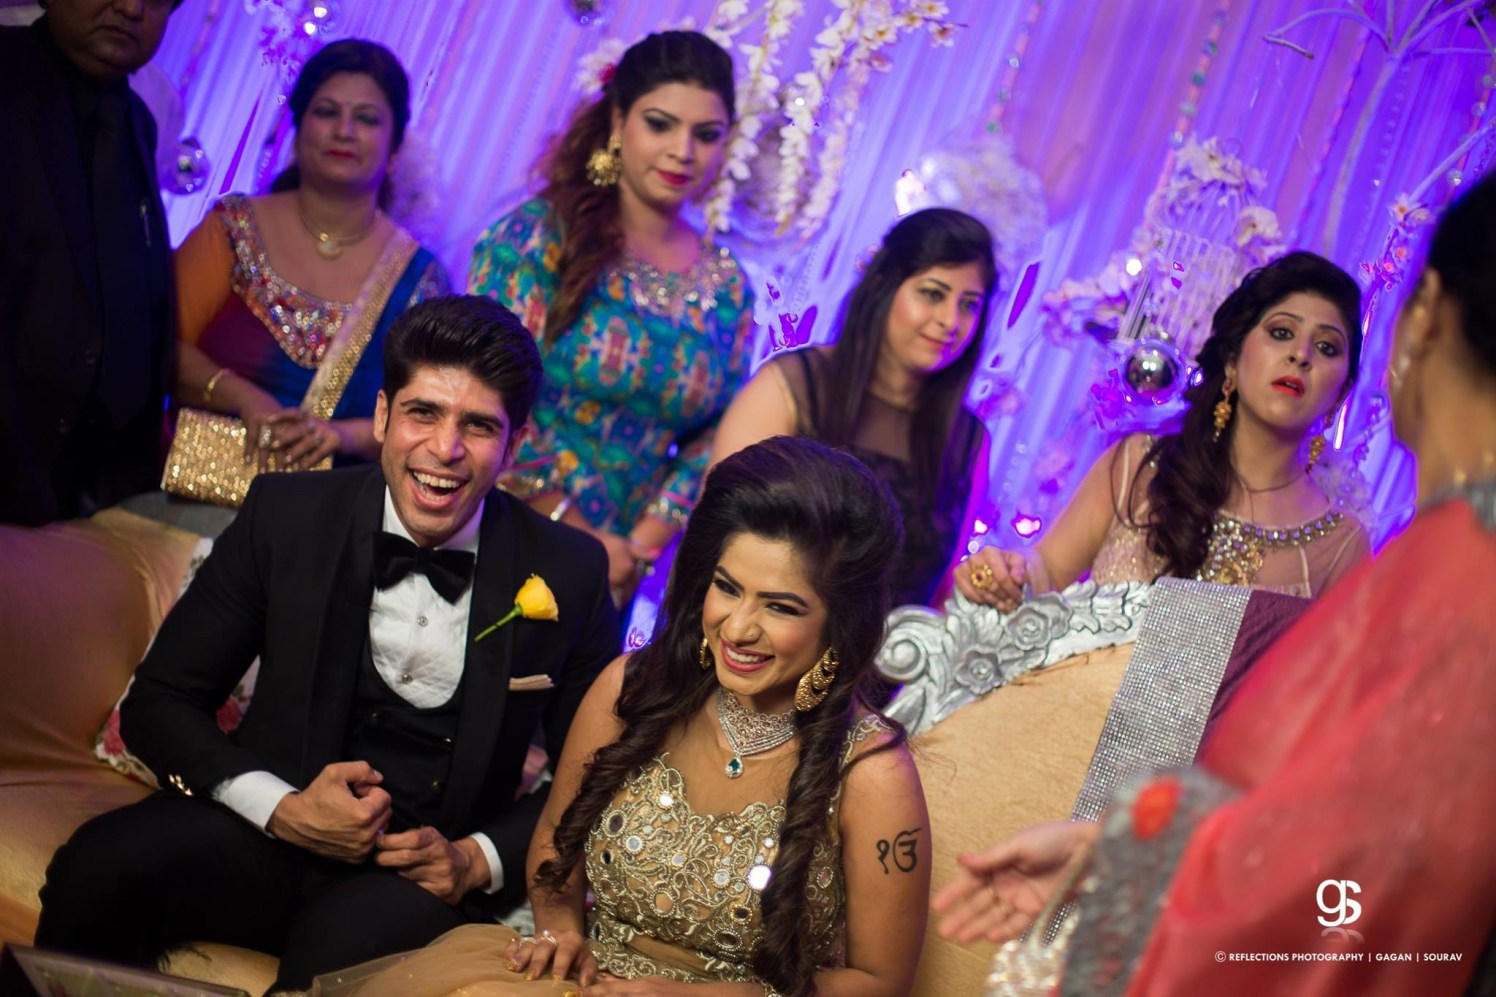 Joyous laughter! by Reflections Photography Wedding-photography | Weddings Photos & Ideas